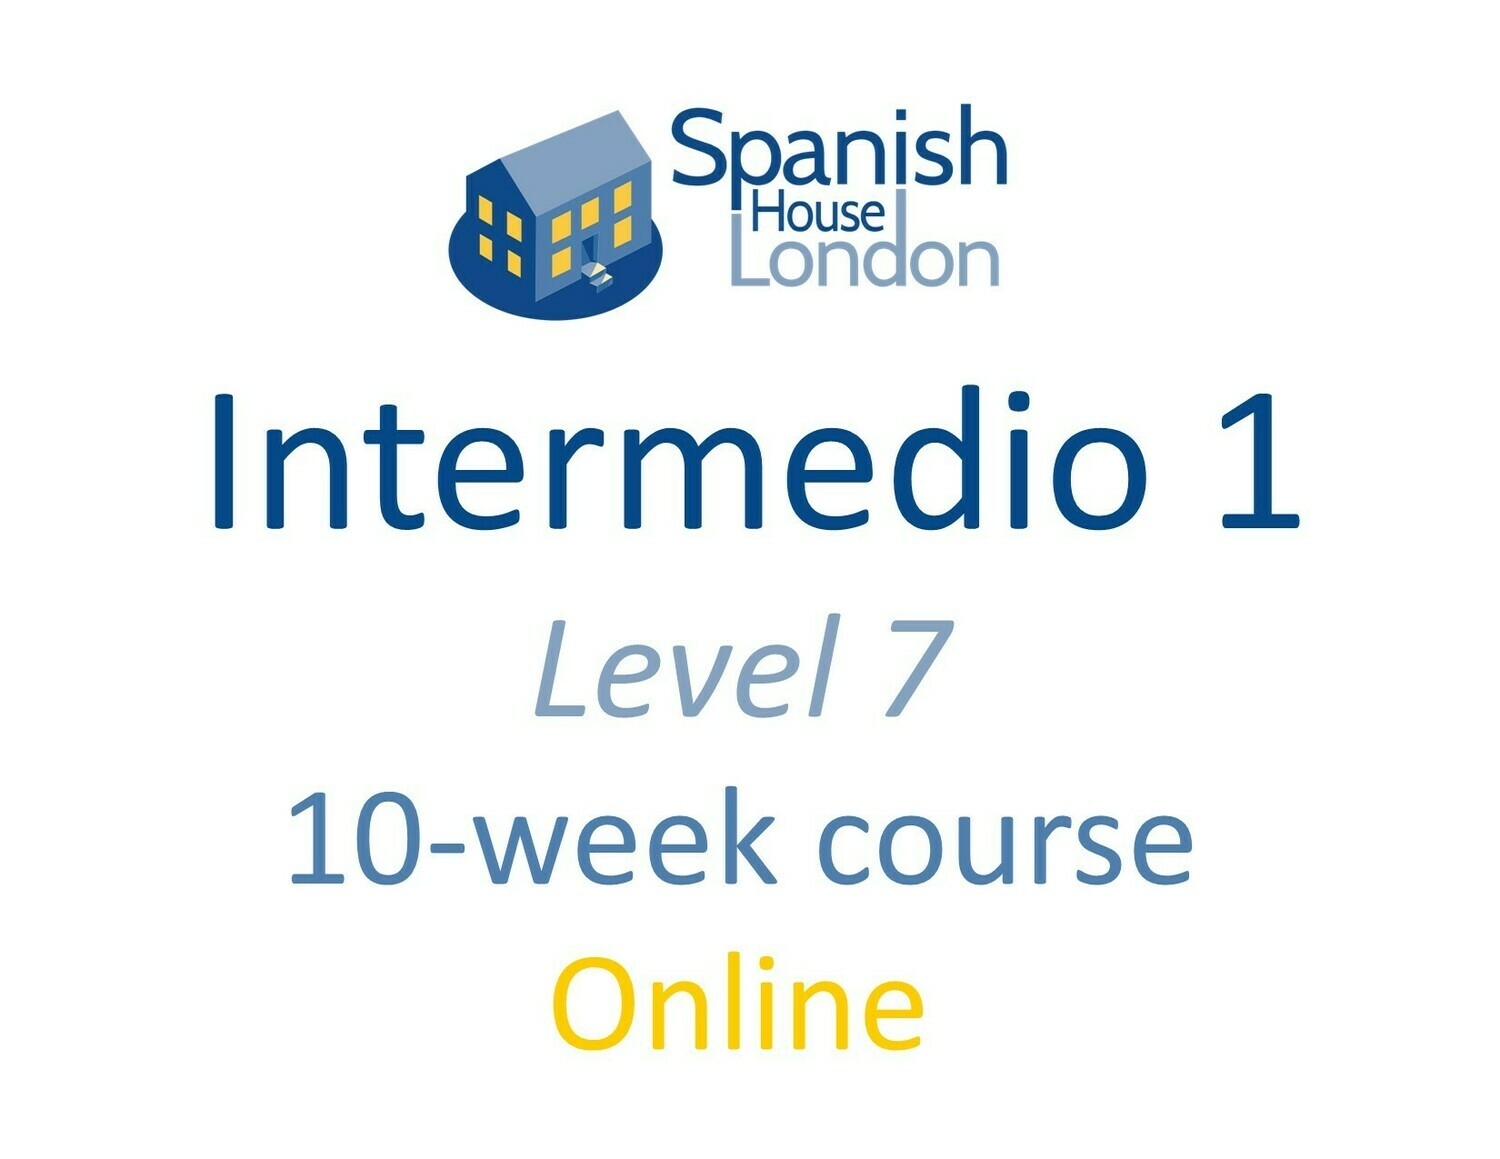 Intermedio 1 Course starting on 3rd August at 7.30pm